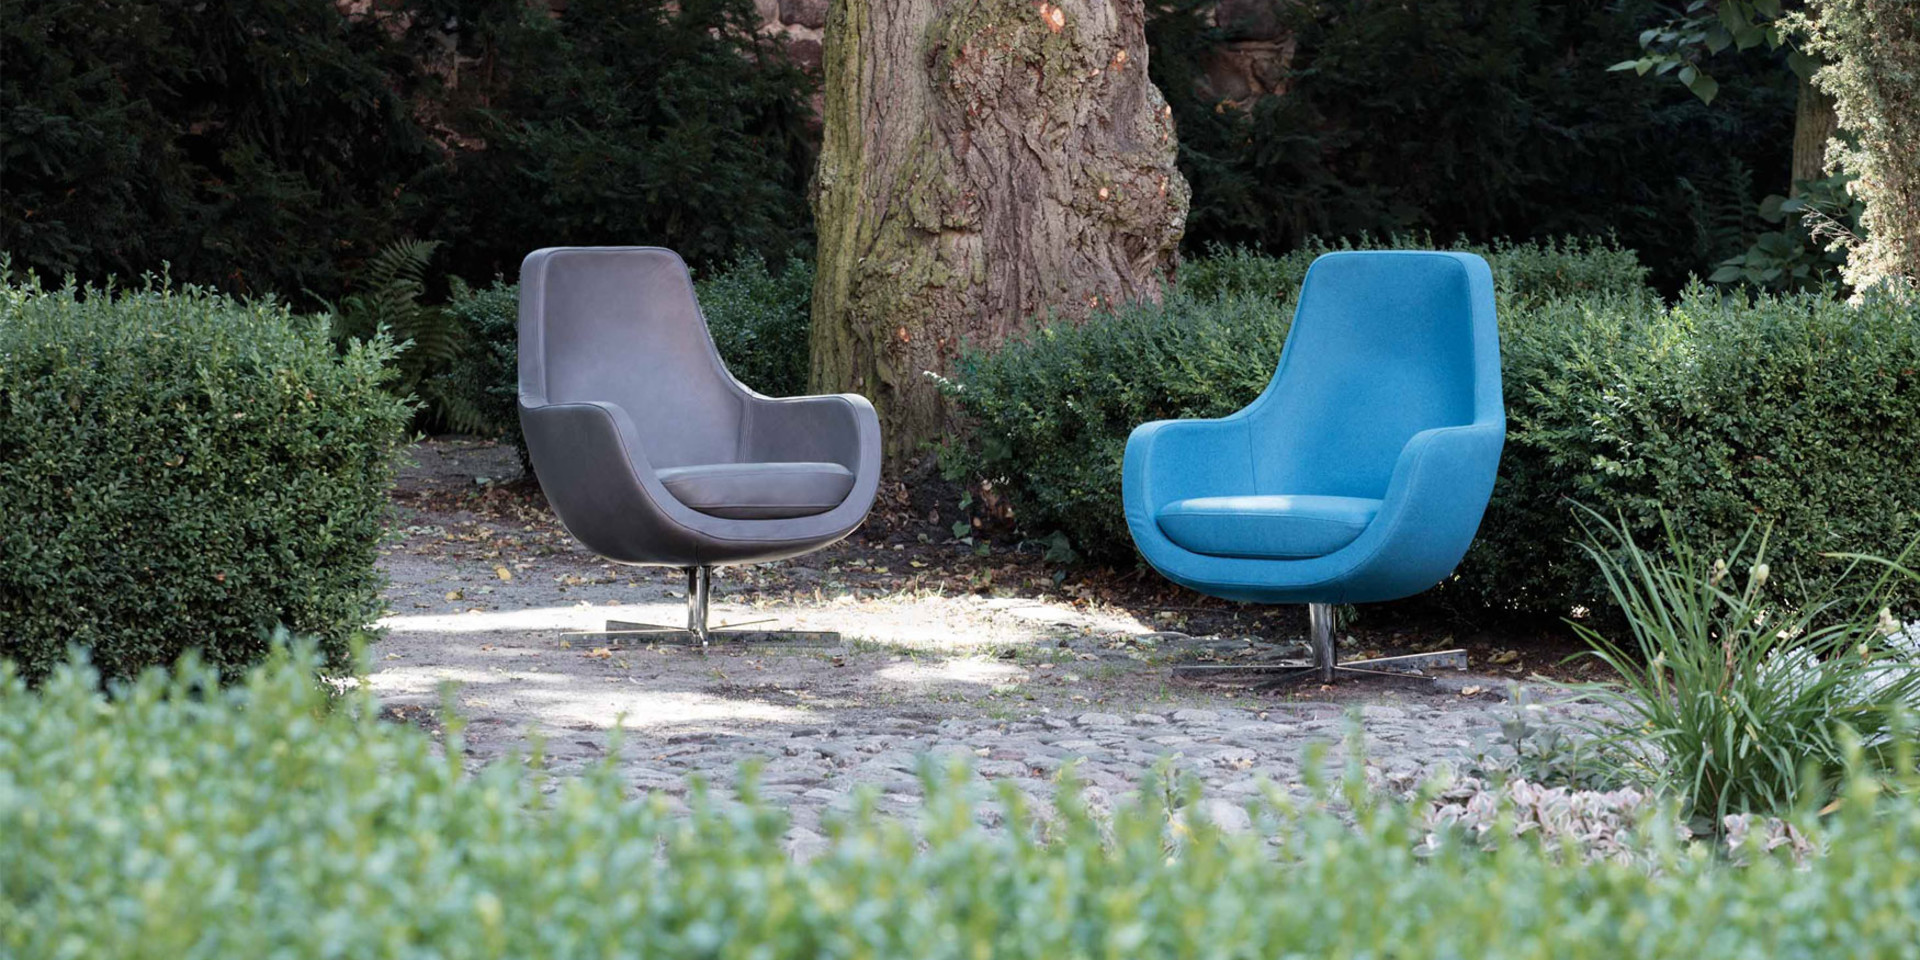 sits-stefani-ambiance-armchair_aniline_grey_panno2240_turquoise_3_0